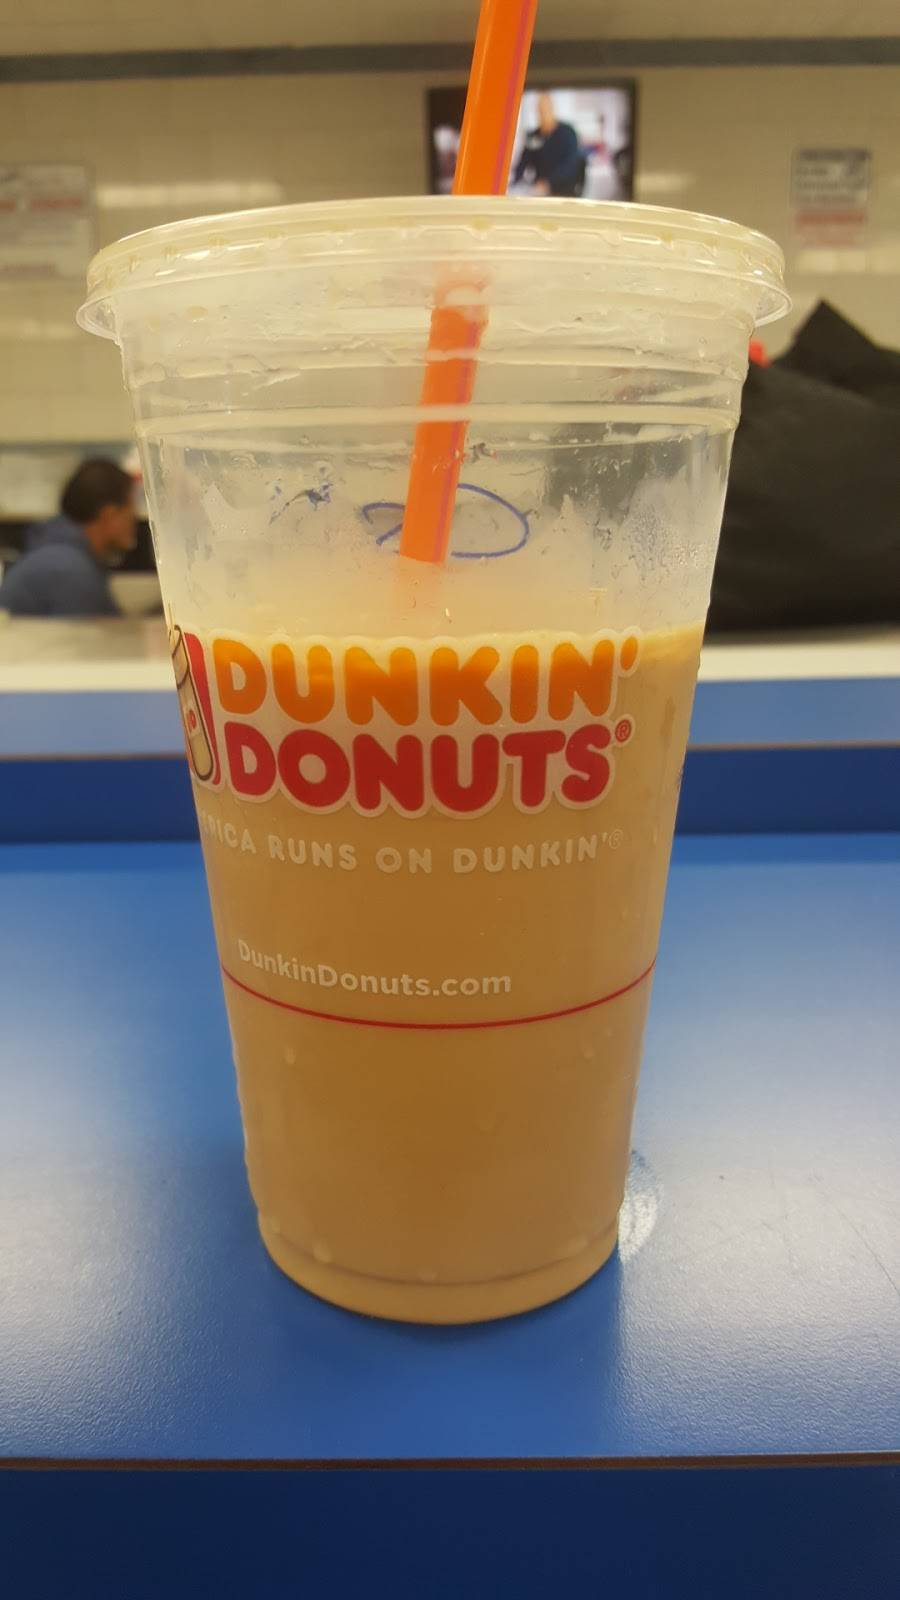 Dunkin Donuts | cafe | 9001 Bergenline Ave, North Bergen, NJ 07047, USA | 2016621111 OR +1 201-662-1111